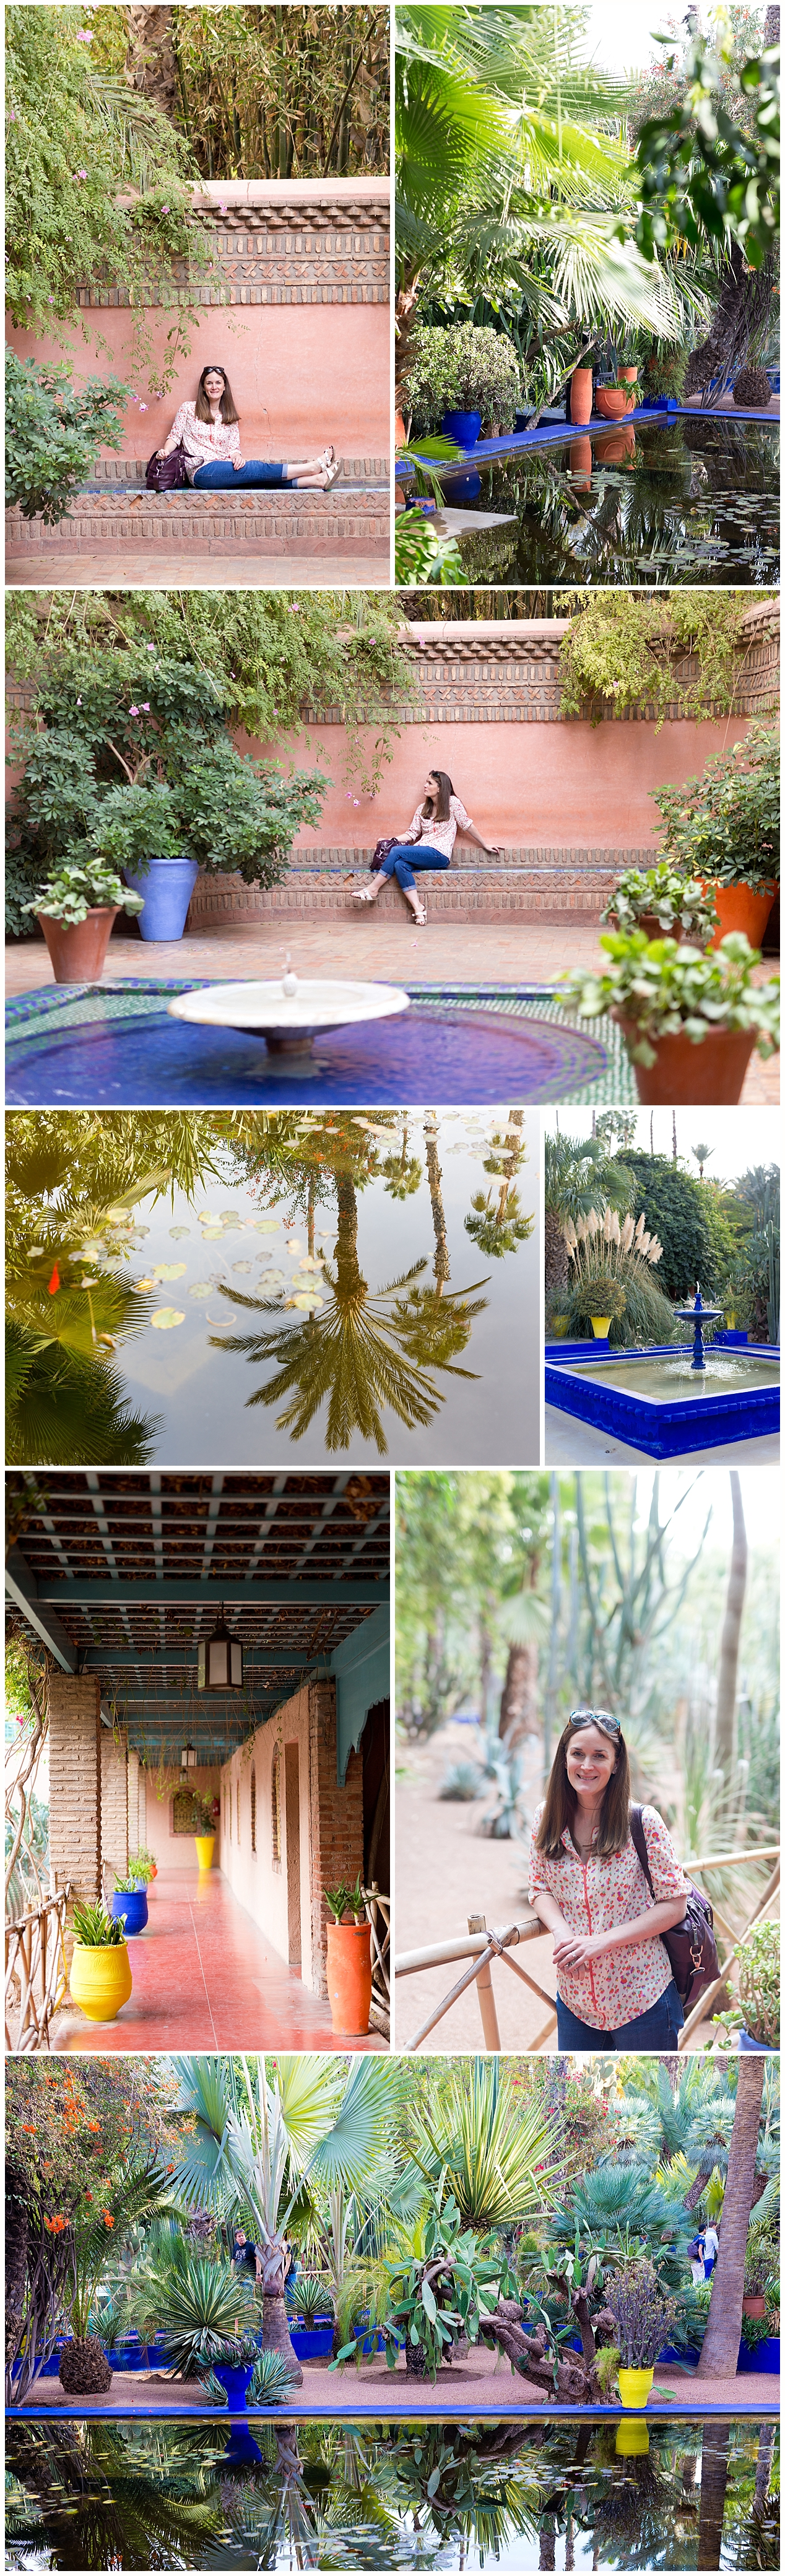 fountains, reflecting pond at Jardin Majorelle, Morocco travel blog